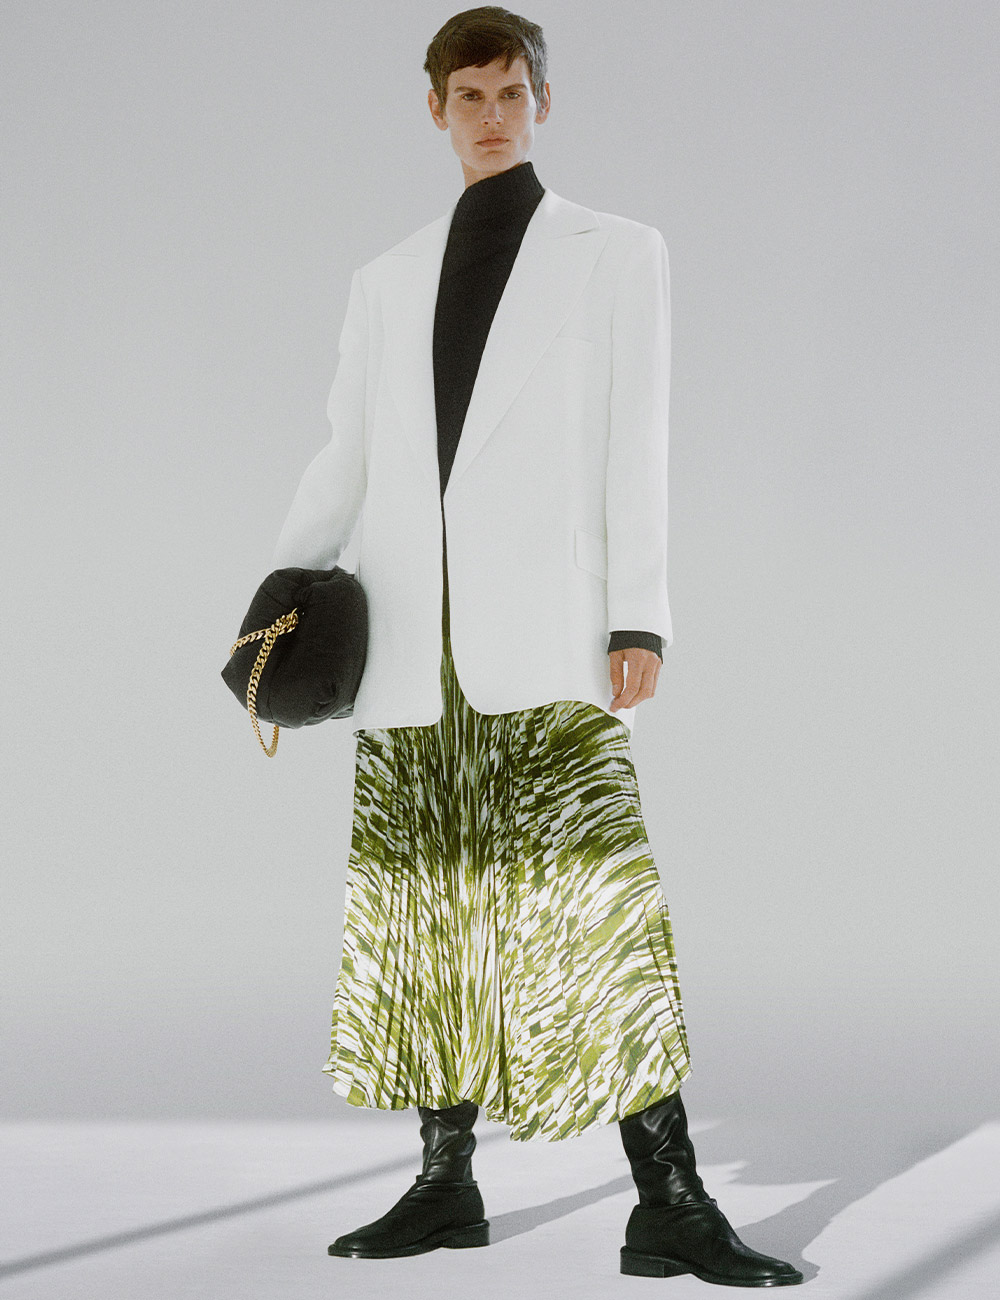 SS21 Look 26: White blazer and green skirt